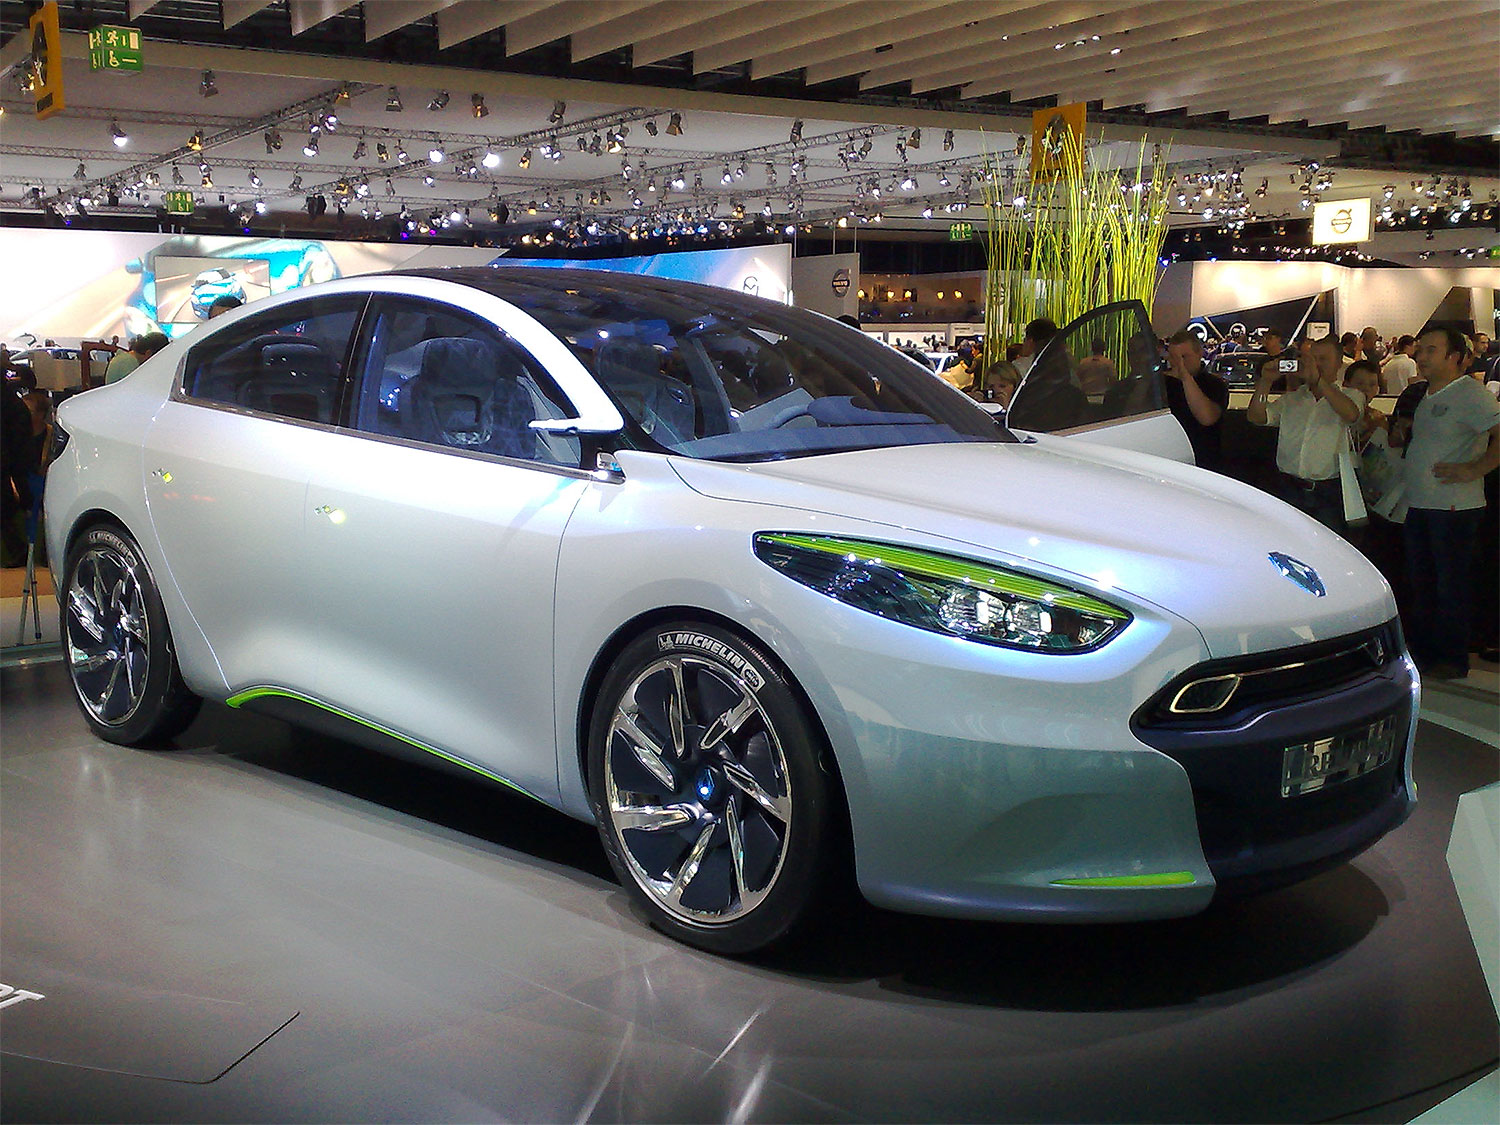 The Renault Fluence Z.E. is an electric version of the Renault Fluence compact sedan, part of the Renault Z.E. program of battery electric vehicles.